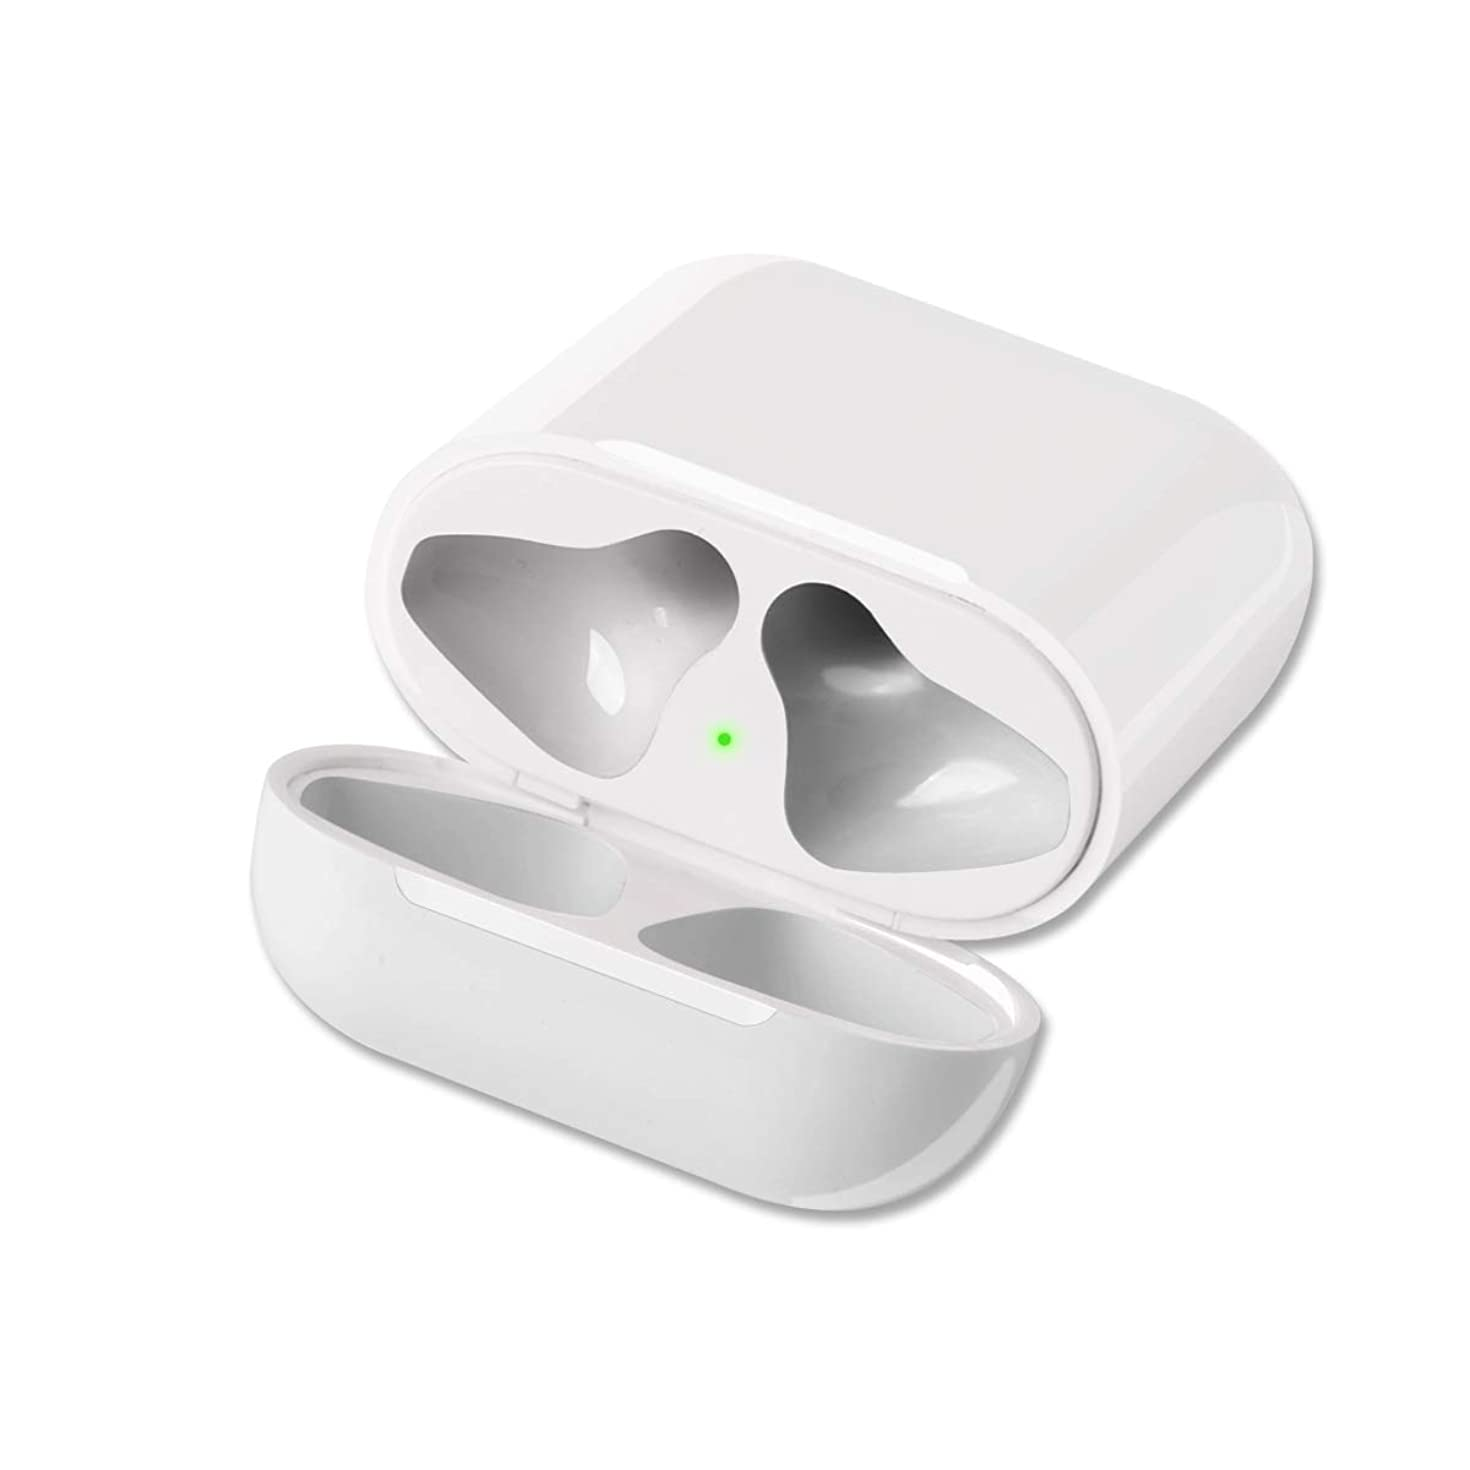 GreenCasty Airpod Charging Case Airpod Charger Adapter Compatible with airpods Headphones Wireless Charging Case Replacement for Air Pods Accessories 15 Minutes Fast Charging (White, No Sync Button)